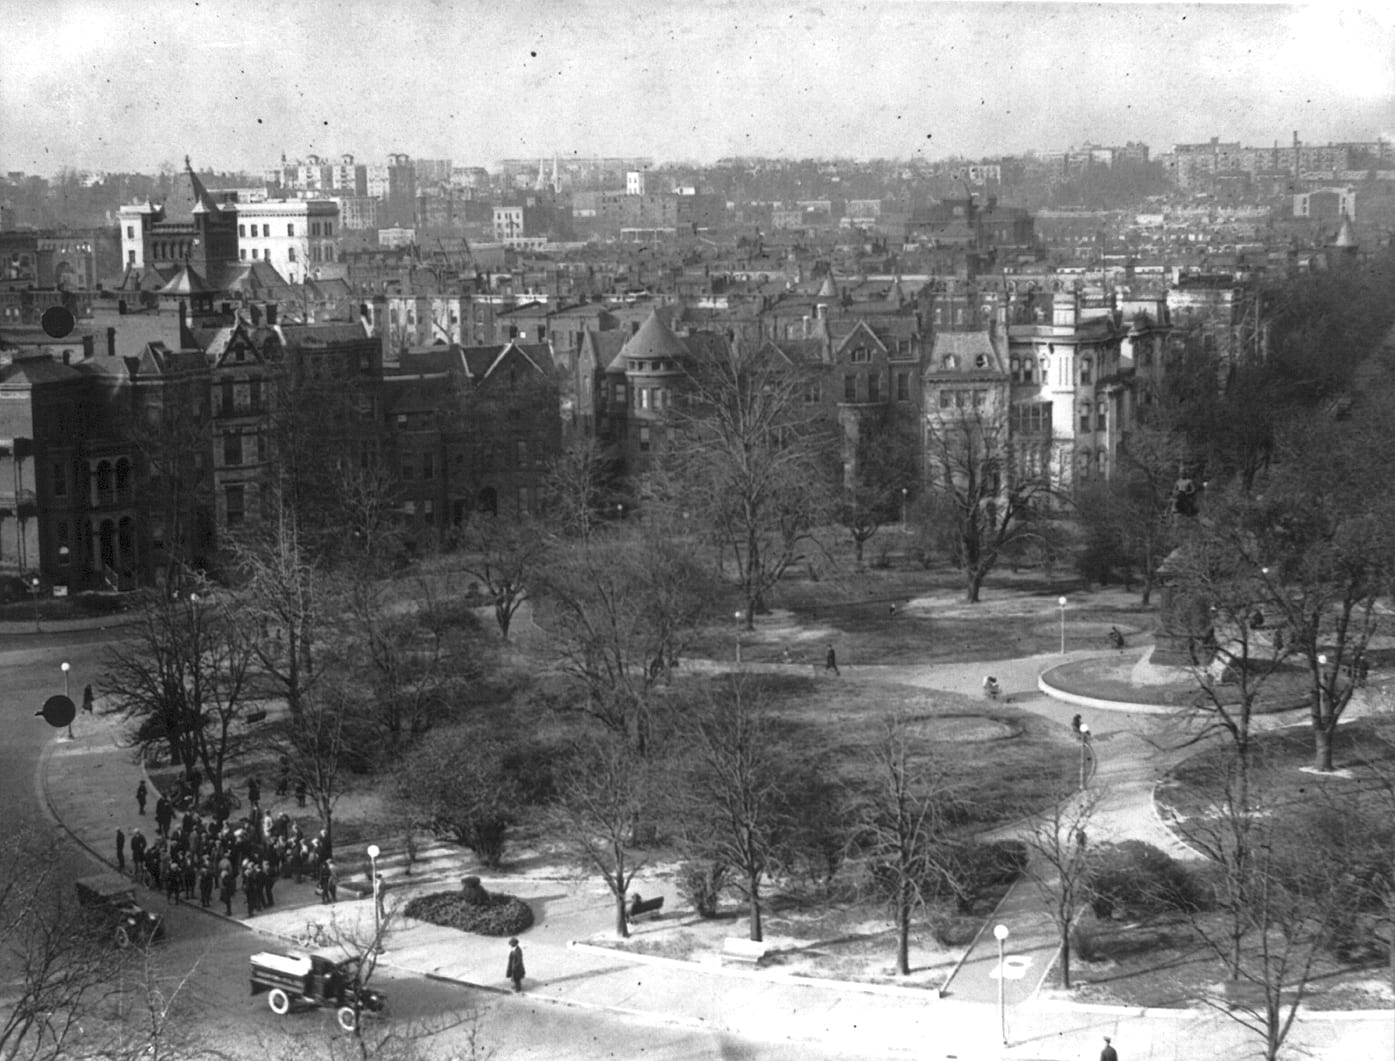 Logan Circle Aerial Photo in the 1920s